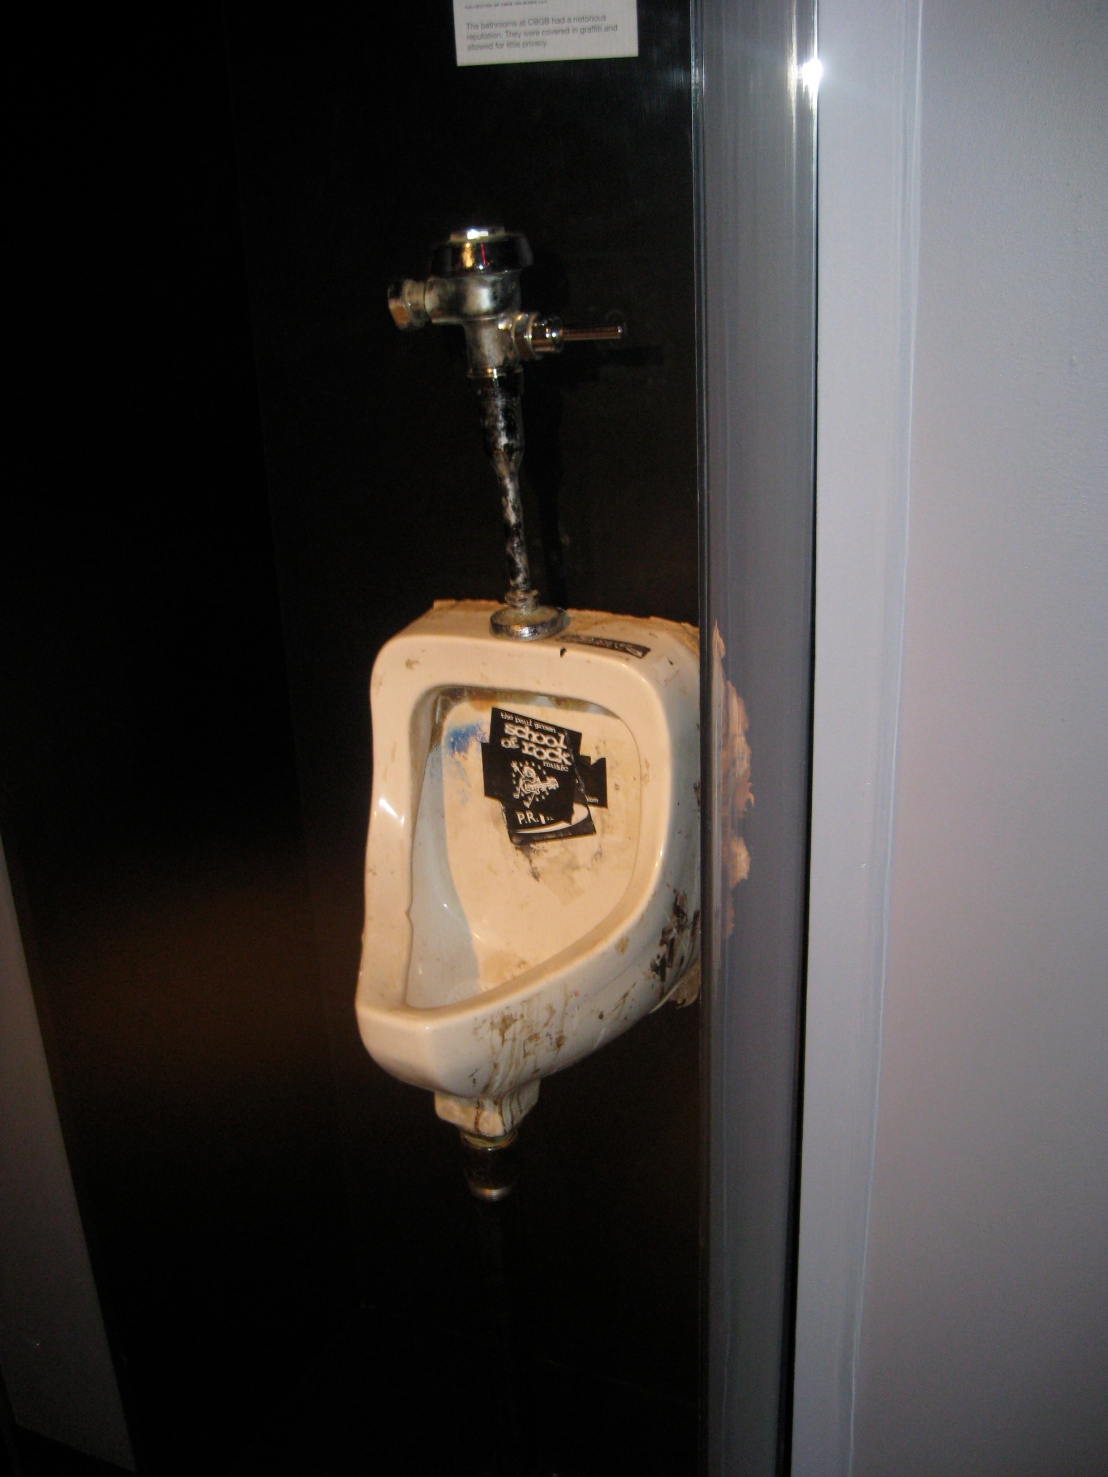 An actual urinal from CBGB (Envy me for seeing this artifact)